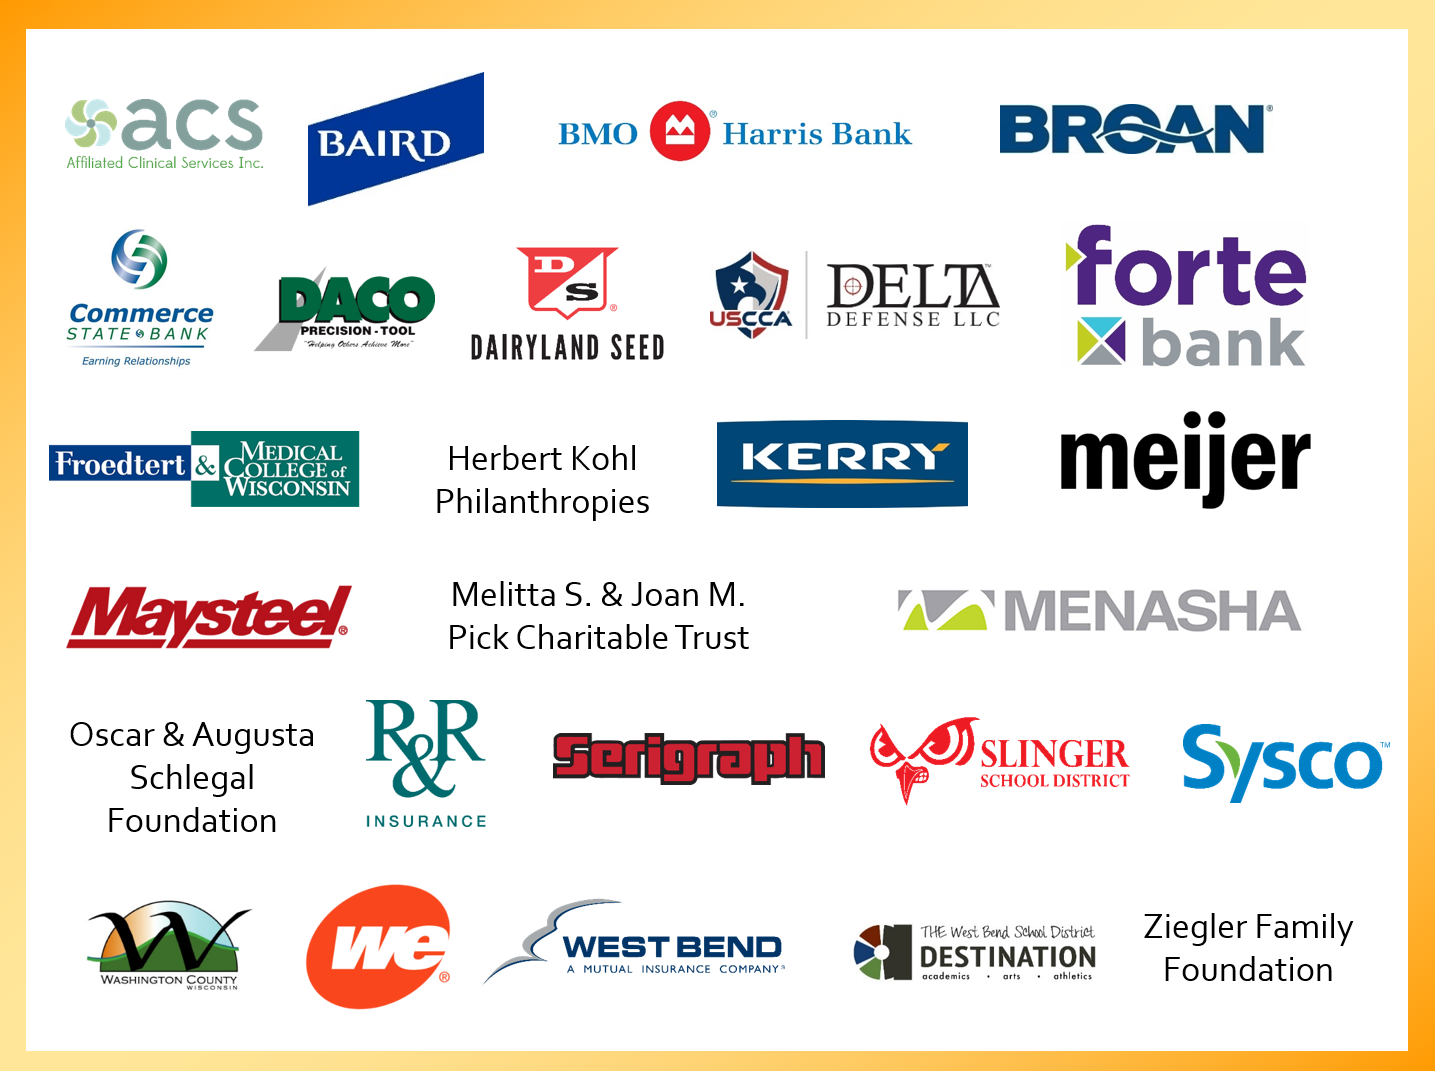 Image of the companies that donated $10,000 or more to the United way campaign.